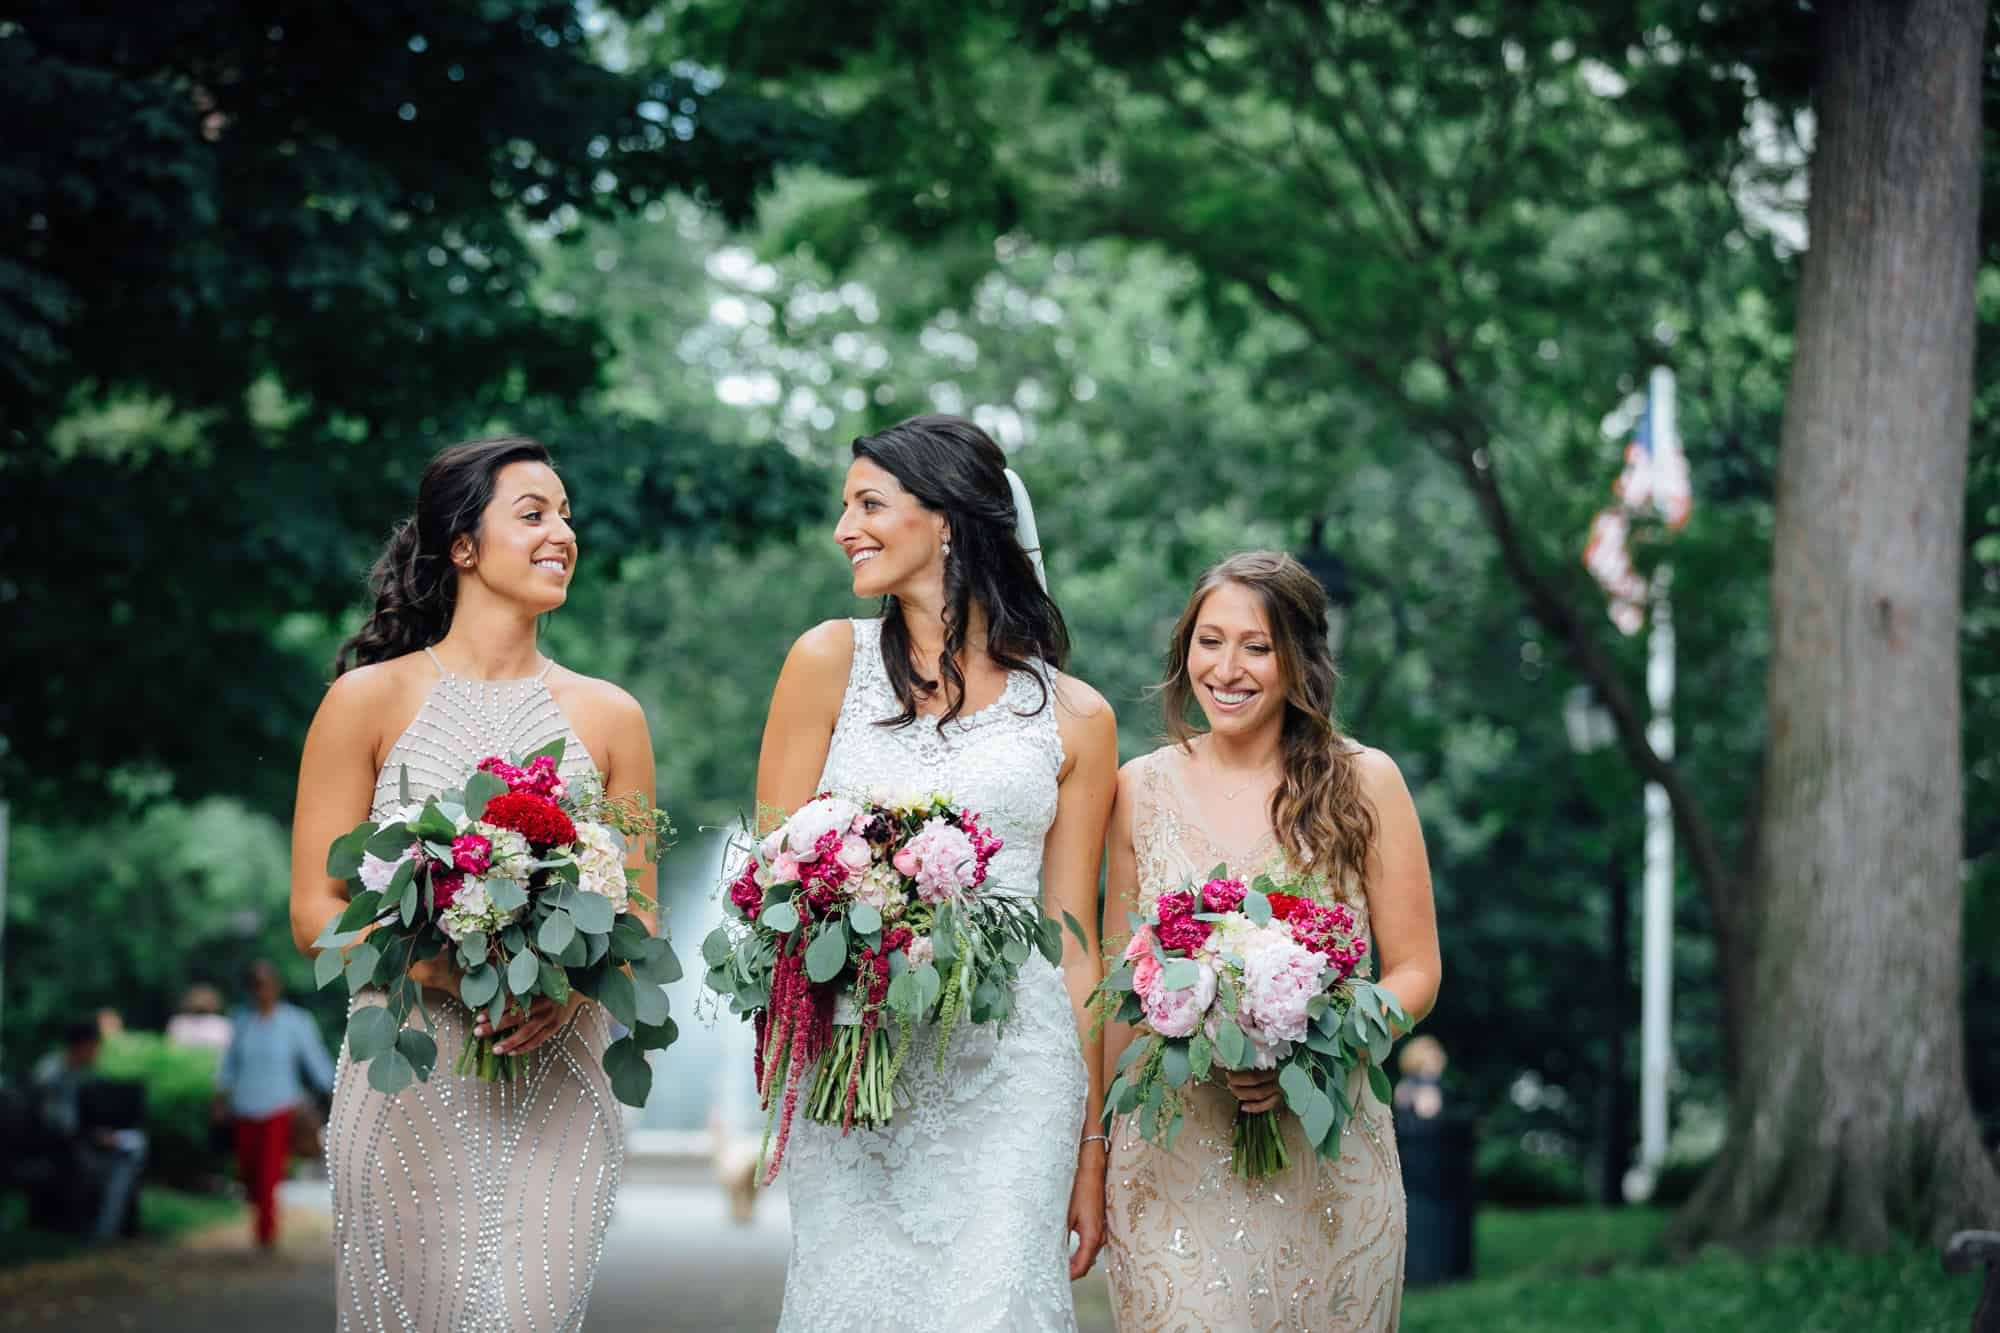 Bride and bridesmaids holding bouquets while walking